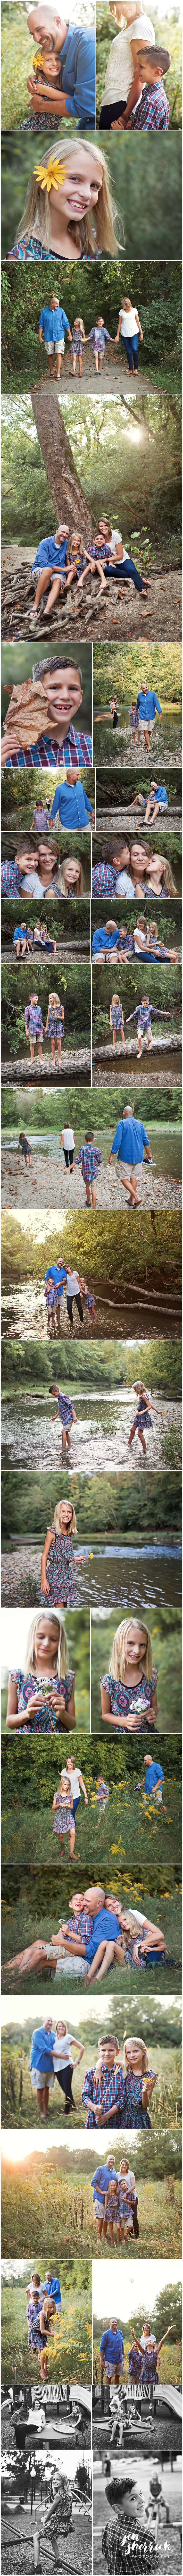 collage of family photos along a creek continued